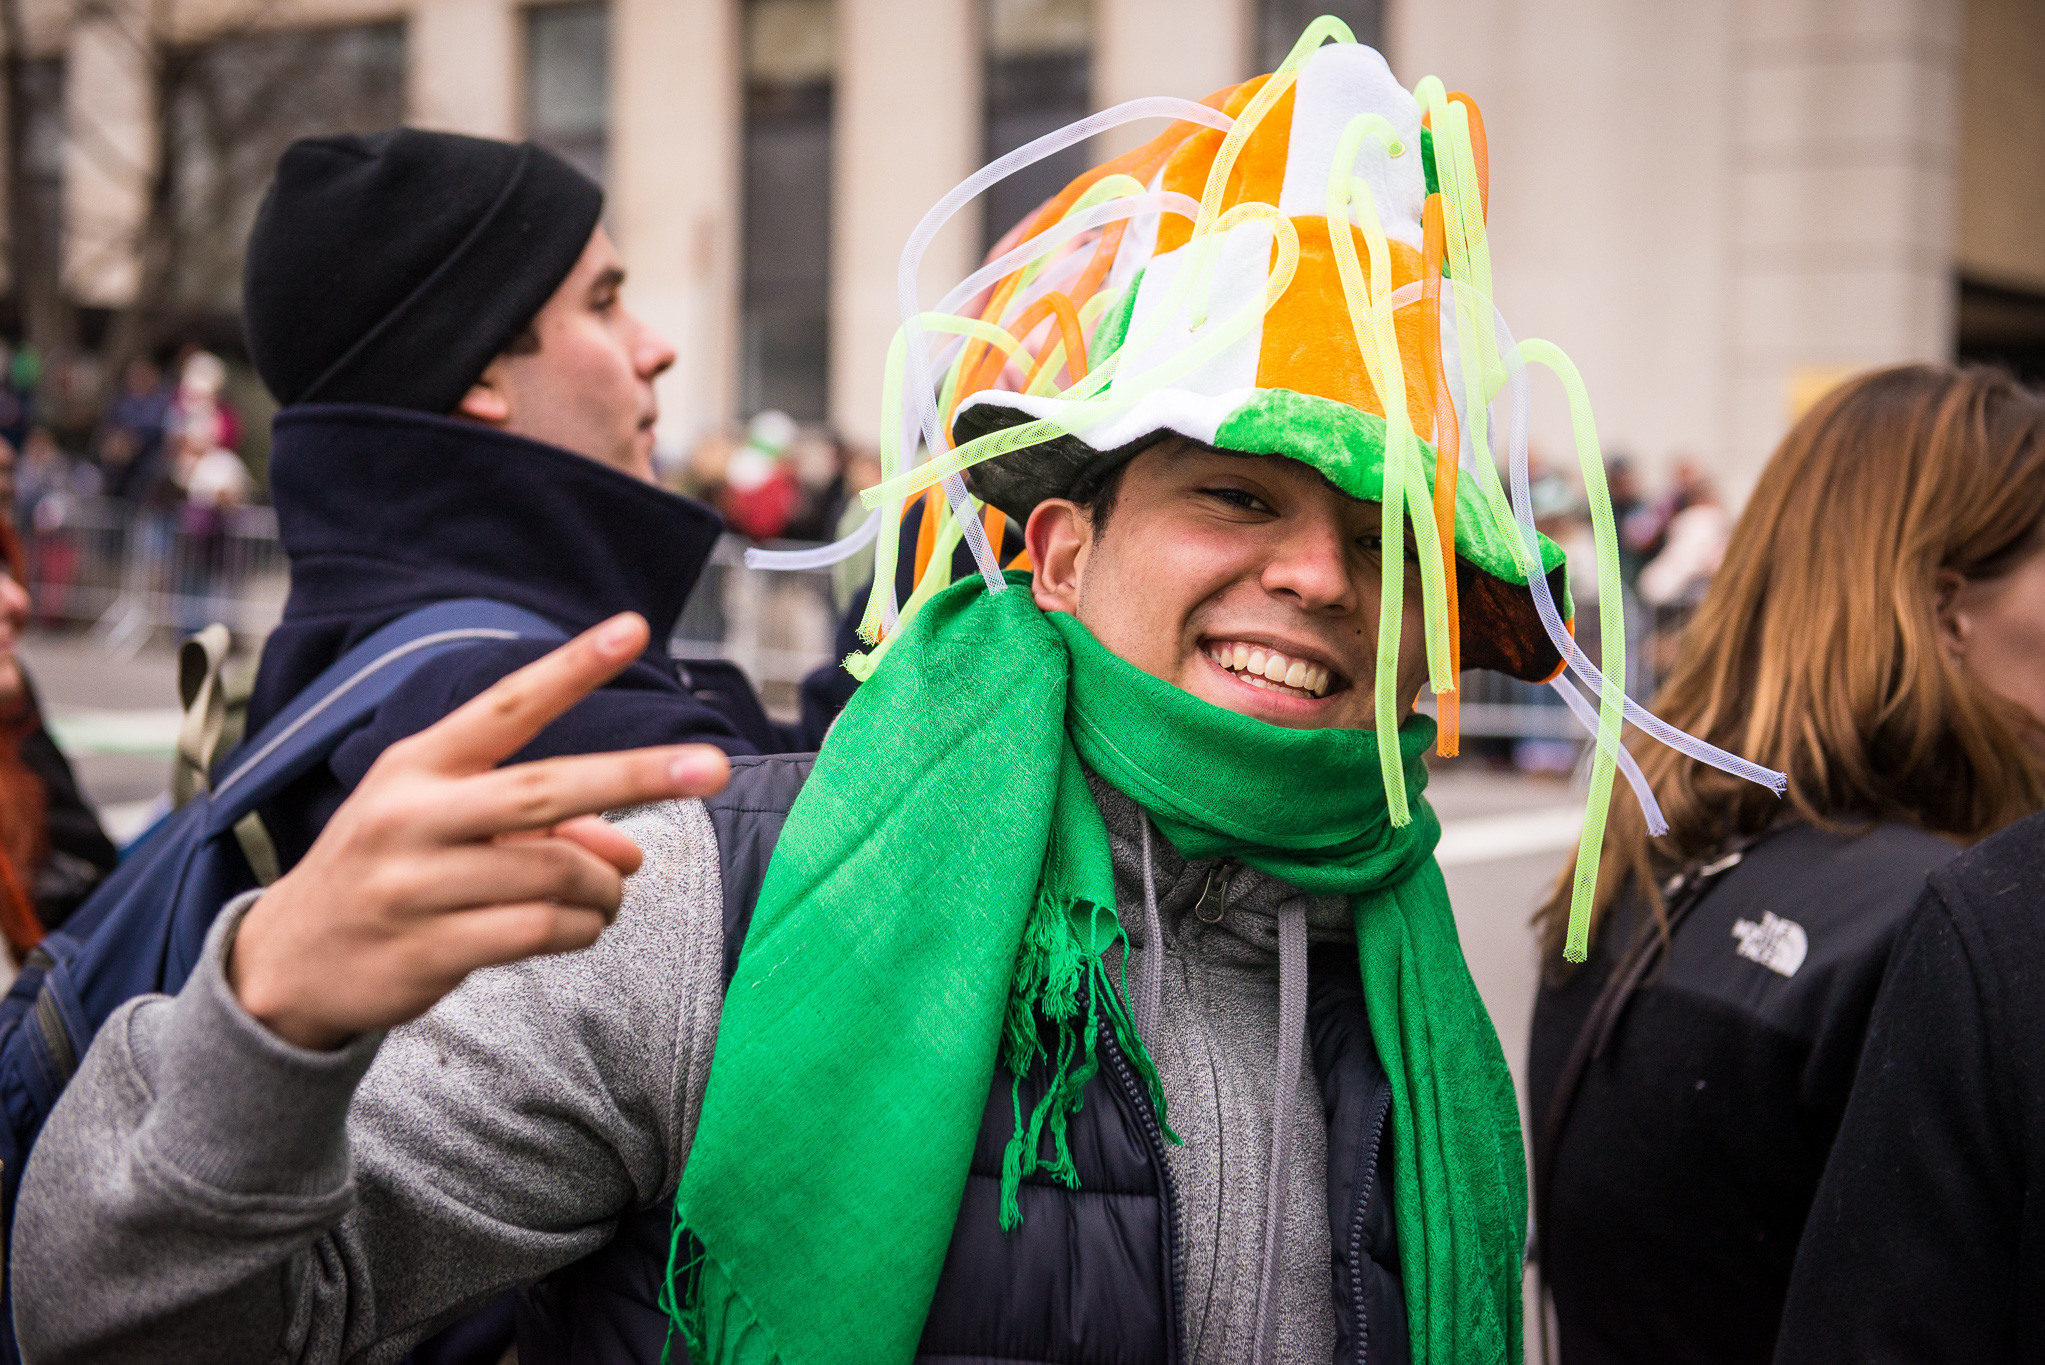 It's only noon and New Yorkers are going crazy for St. Patrick's Day